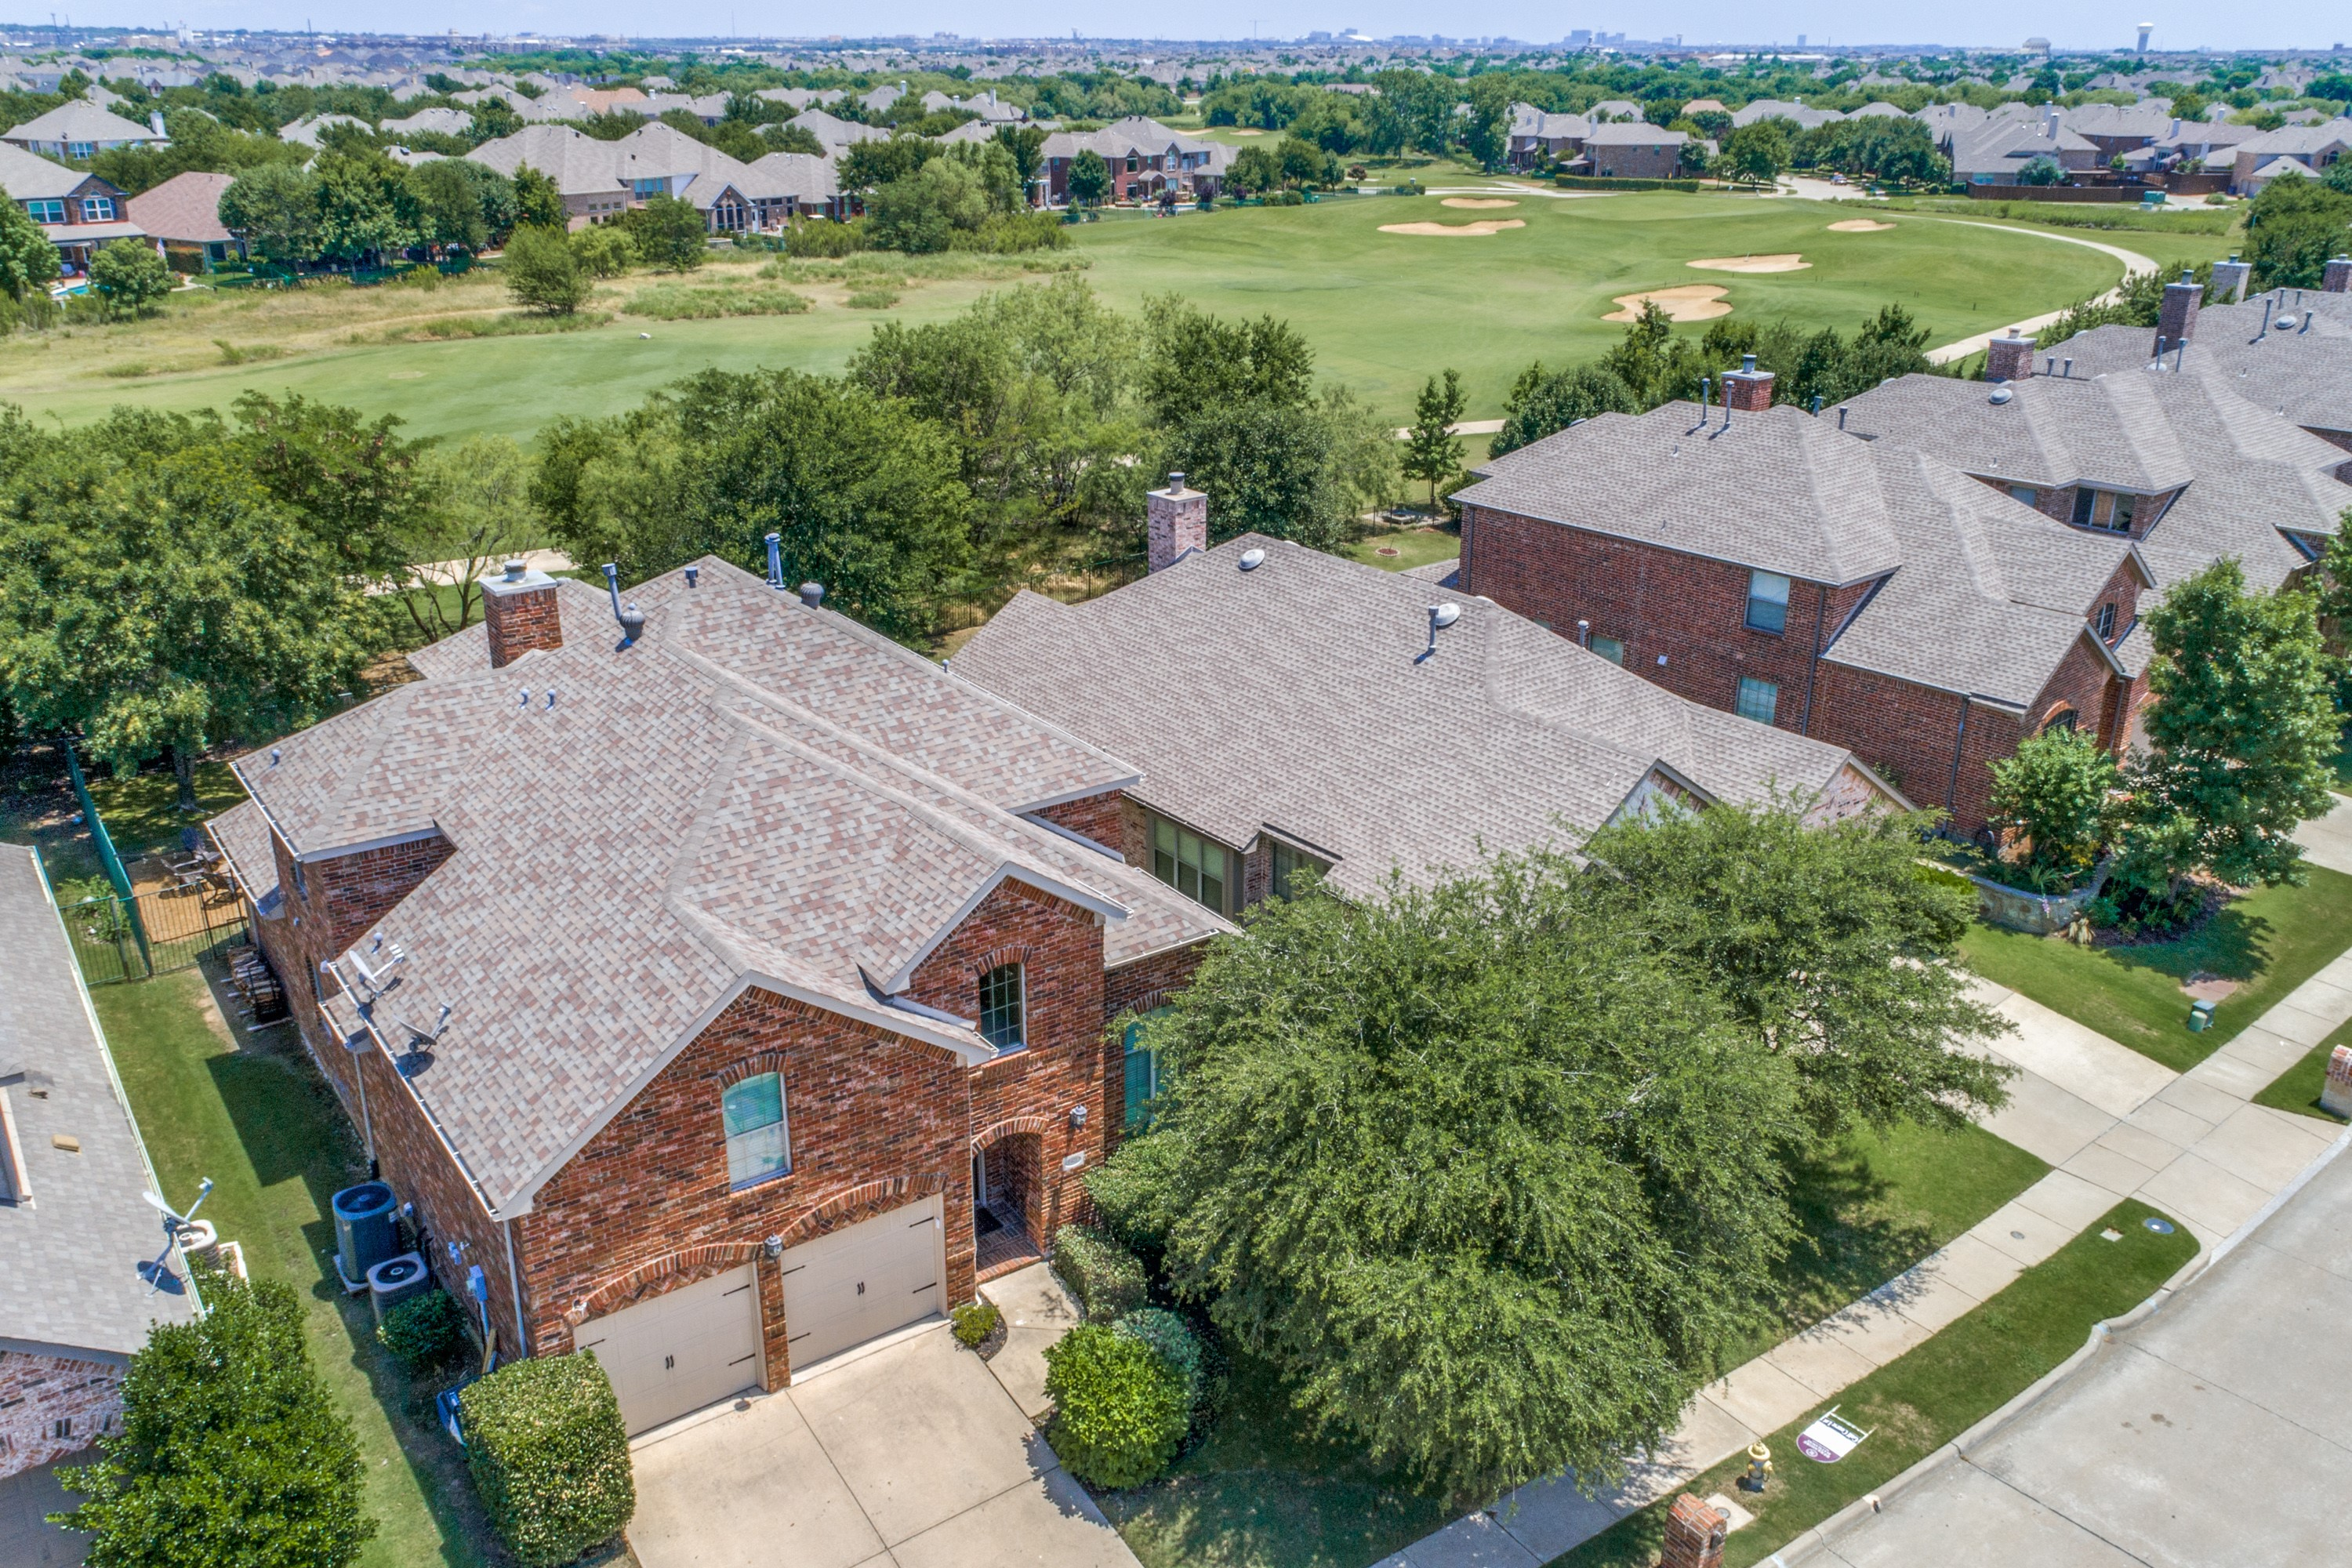 11422 Tenison golf view